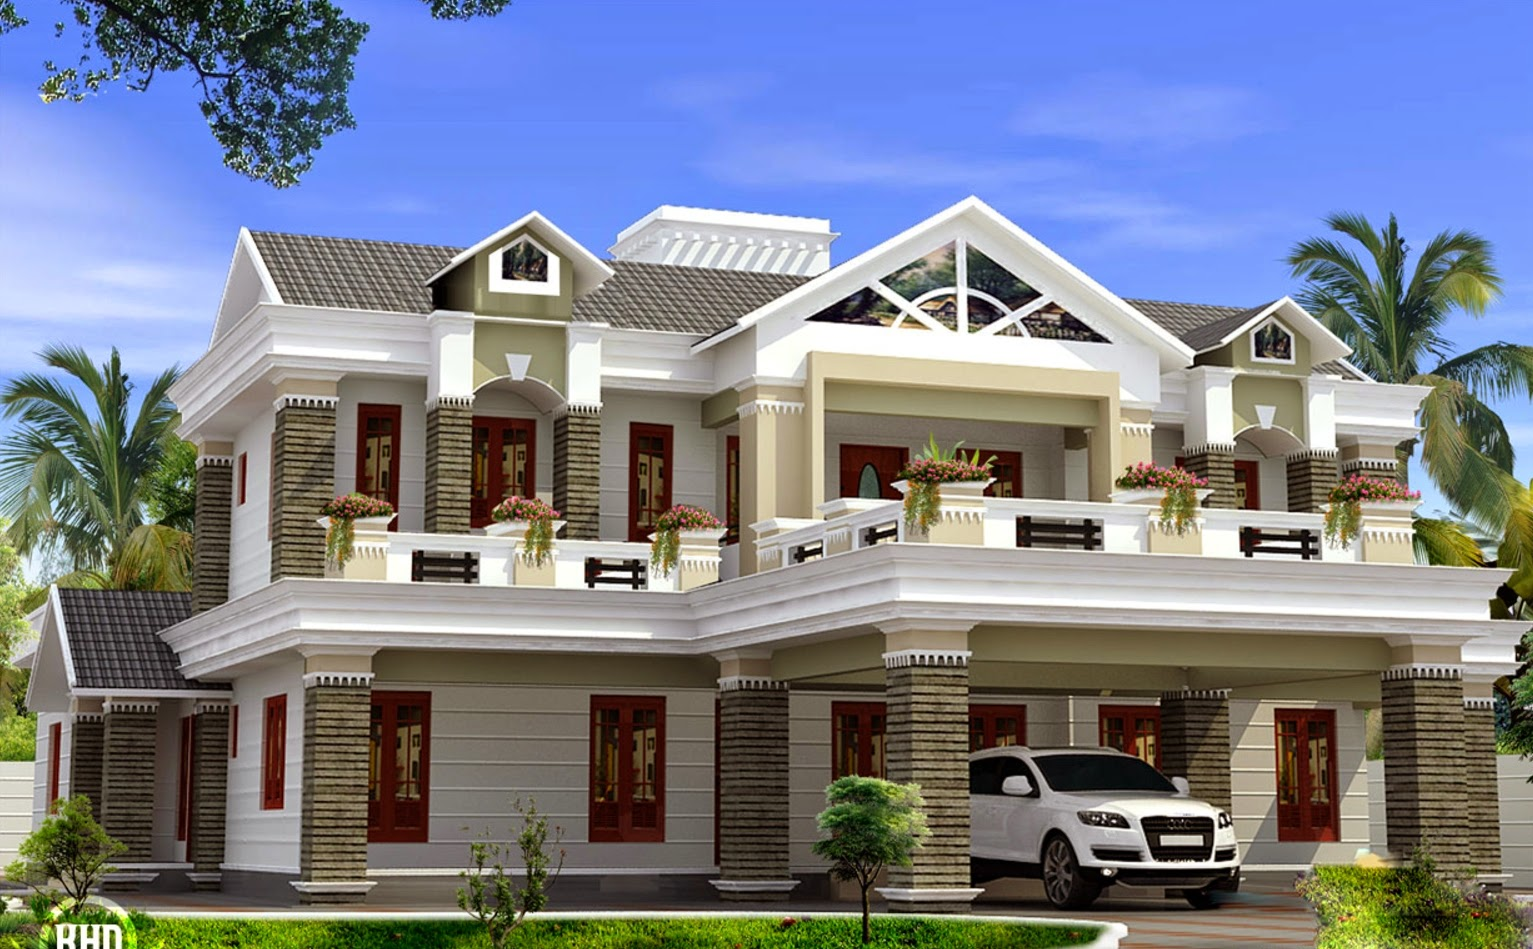 Beautiful Kerala House Plans - Download Kerala Style Small House Plans With Photos Pics